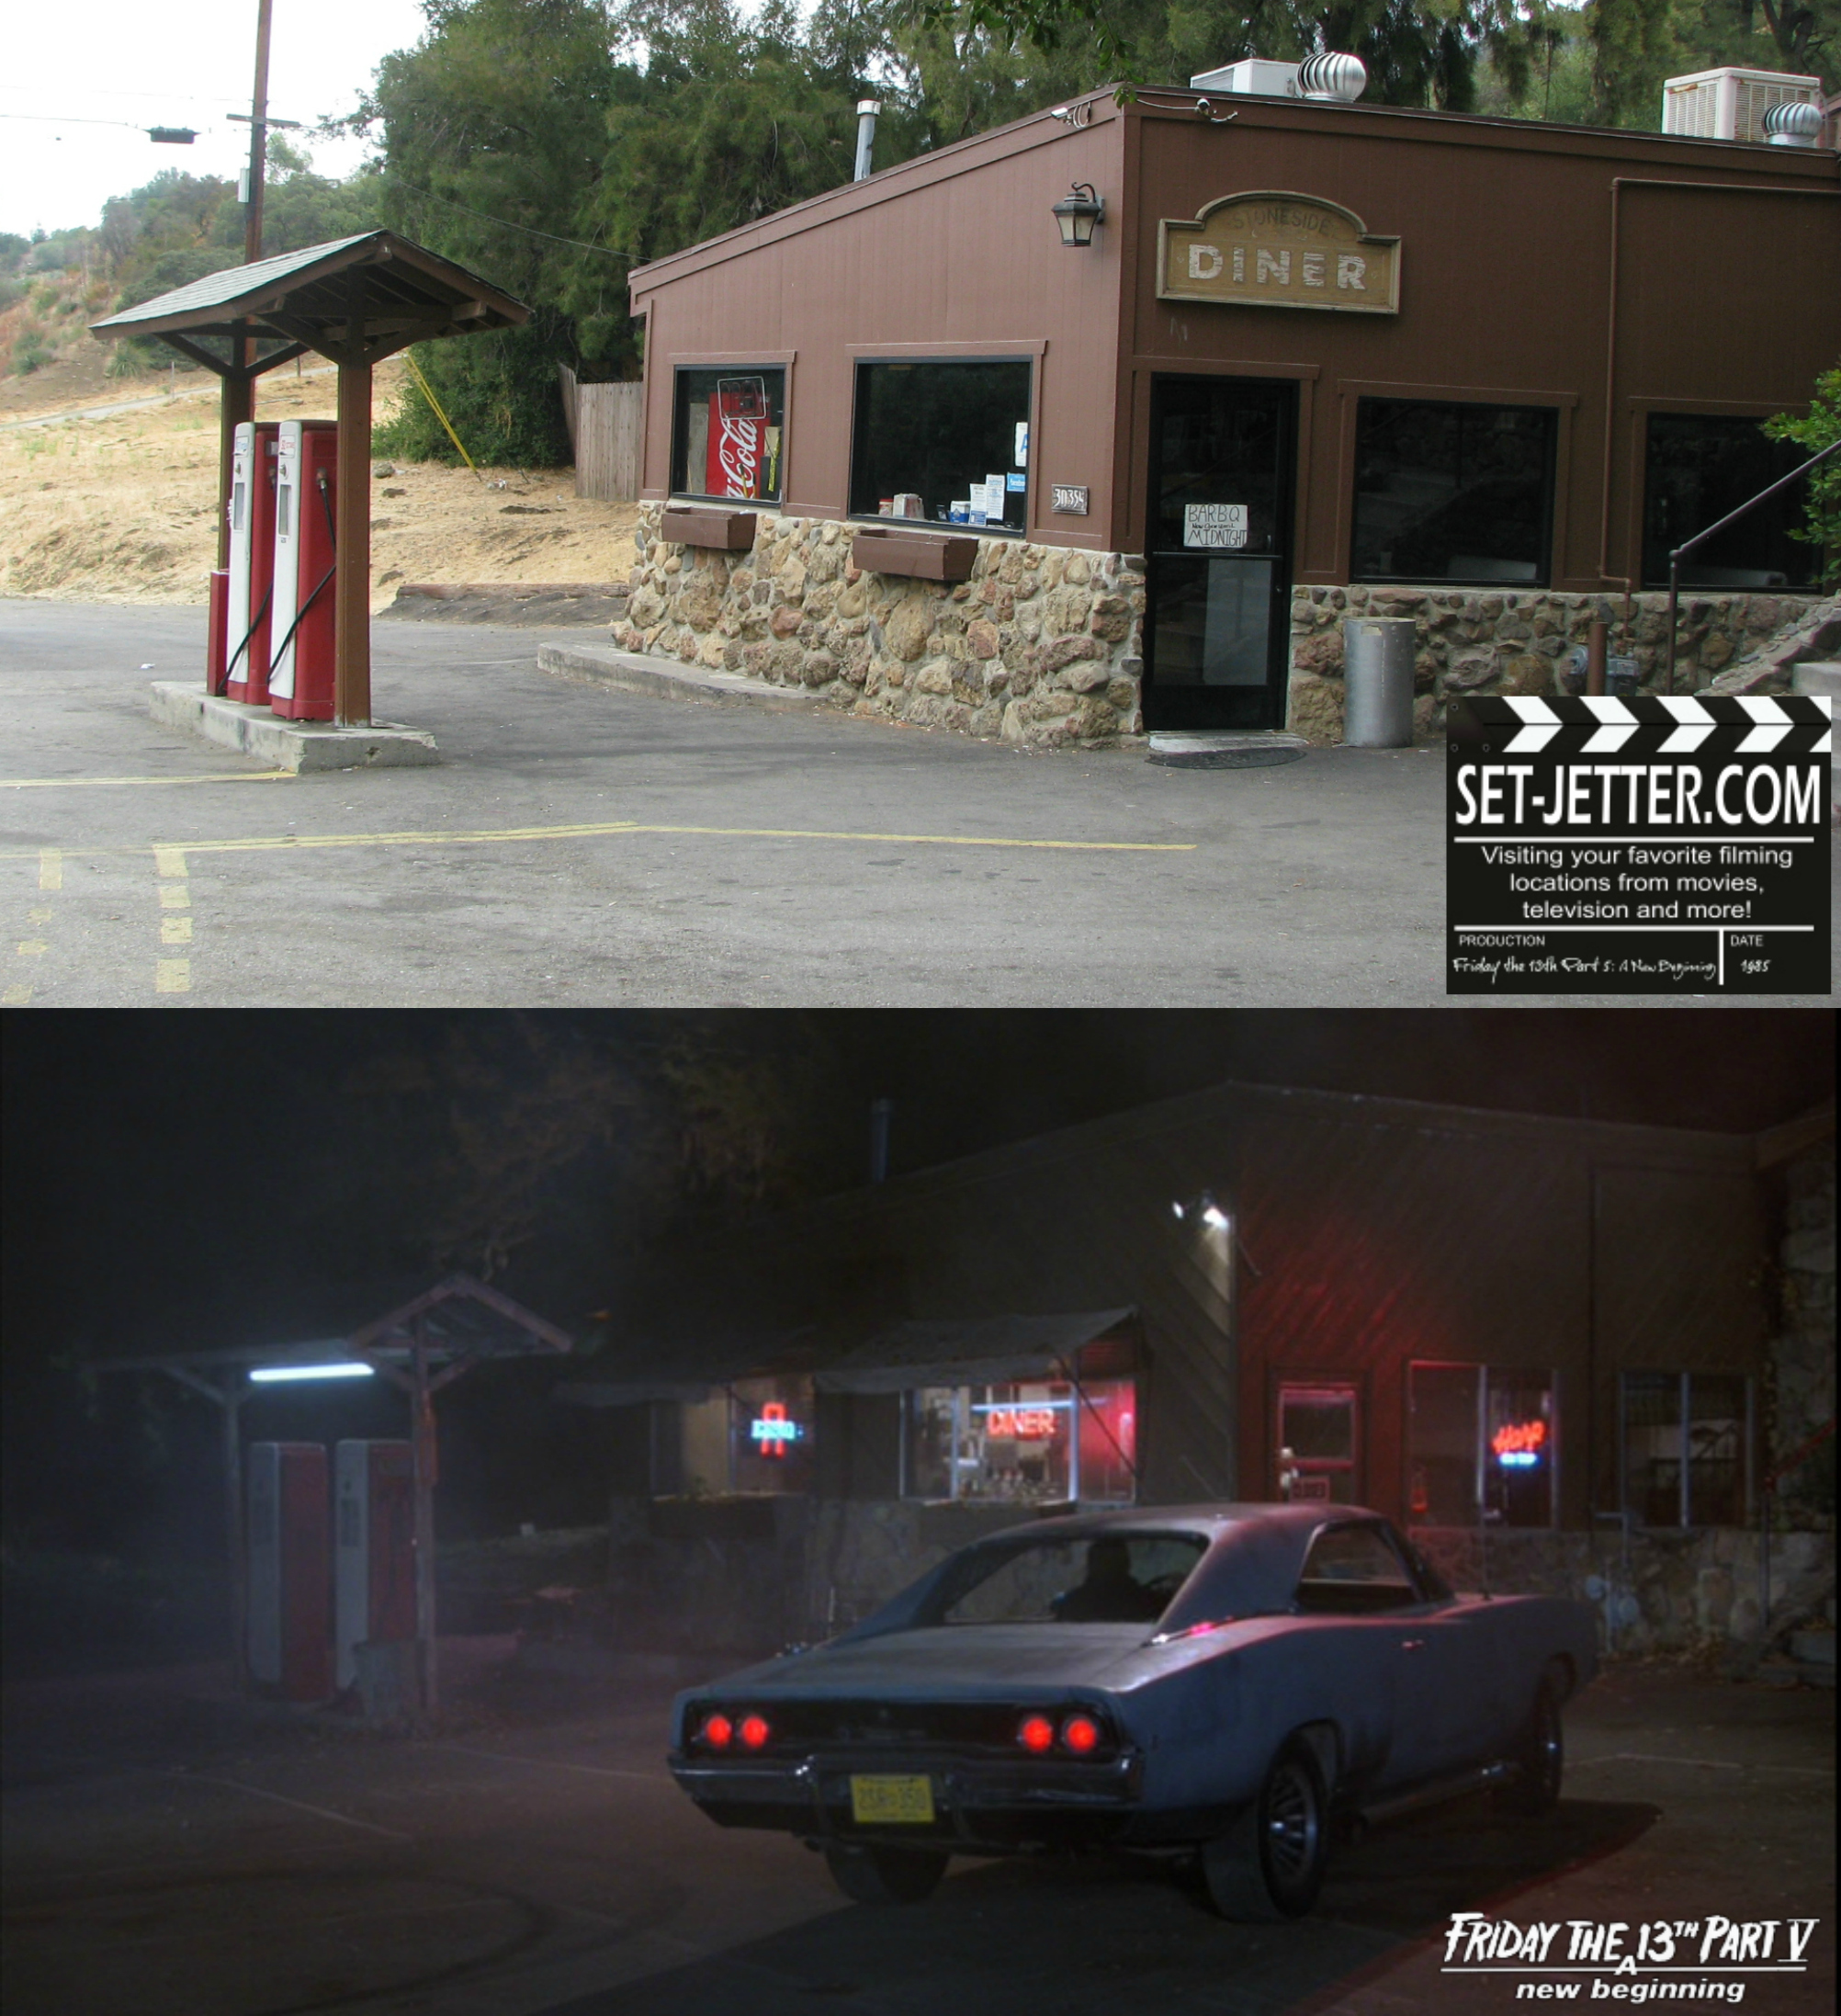 Friday the 13th Part V comparison 03.jpg